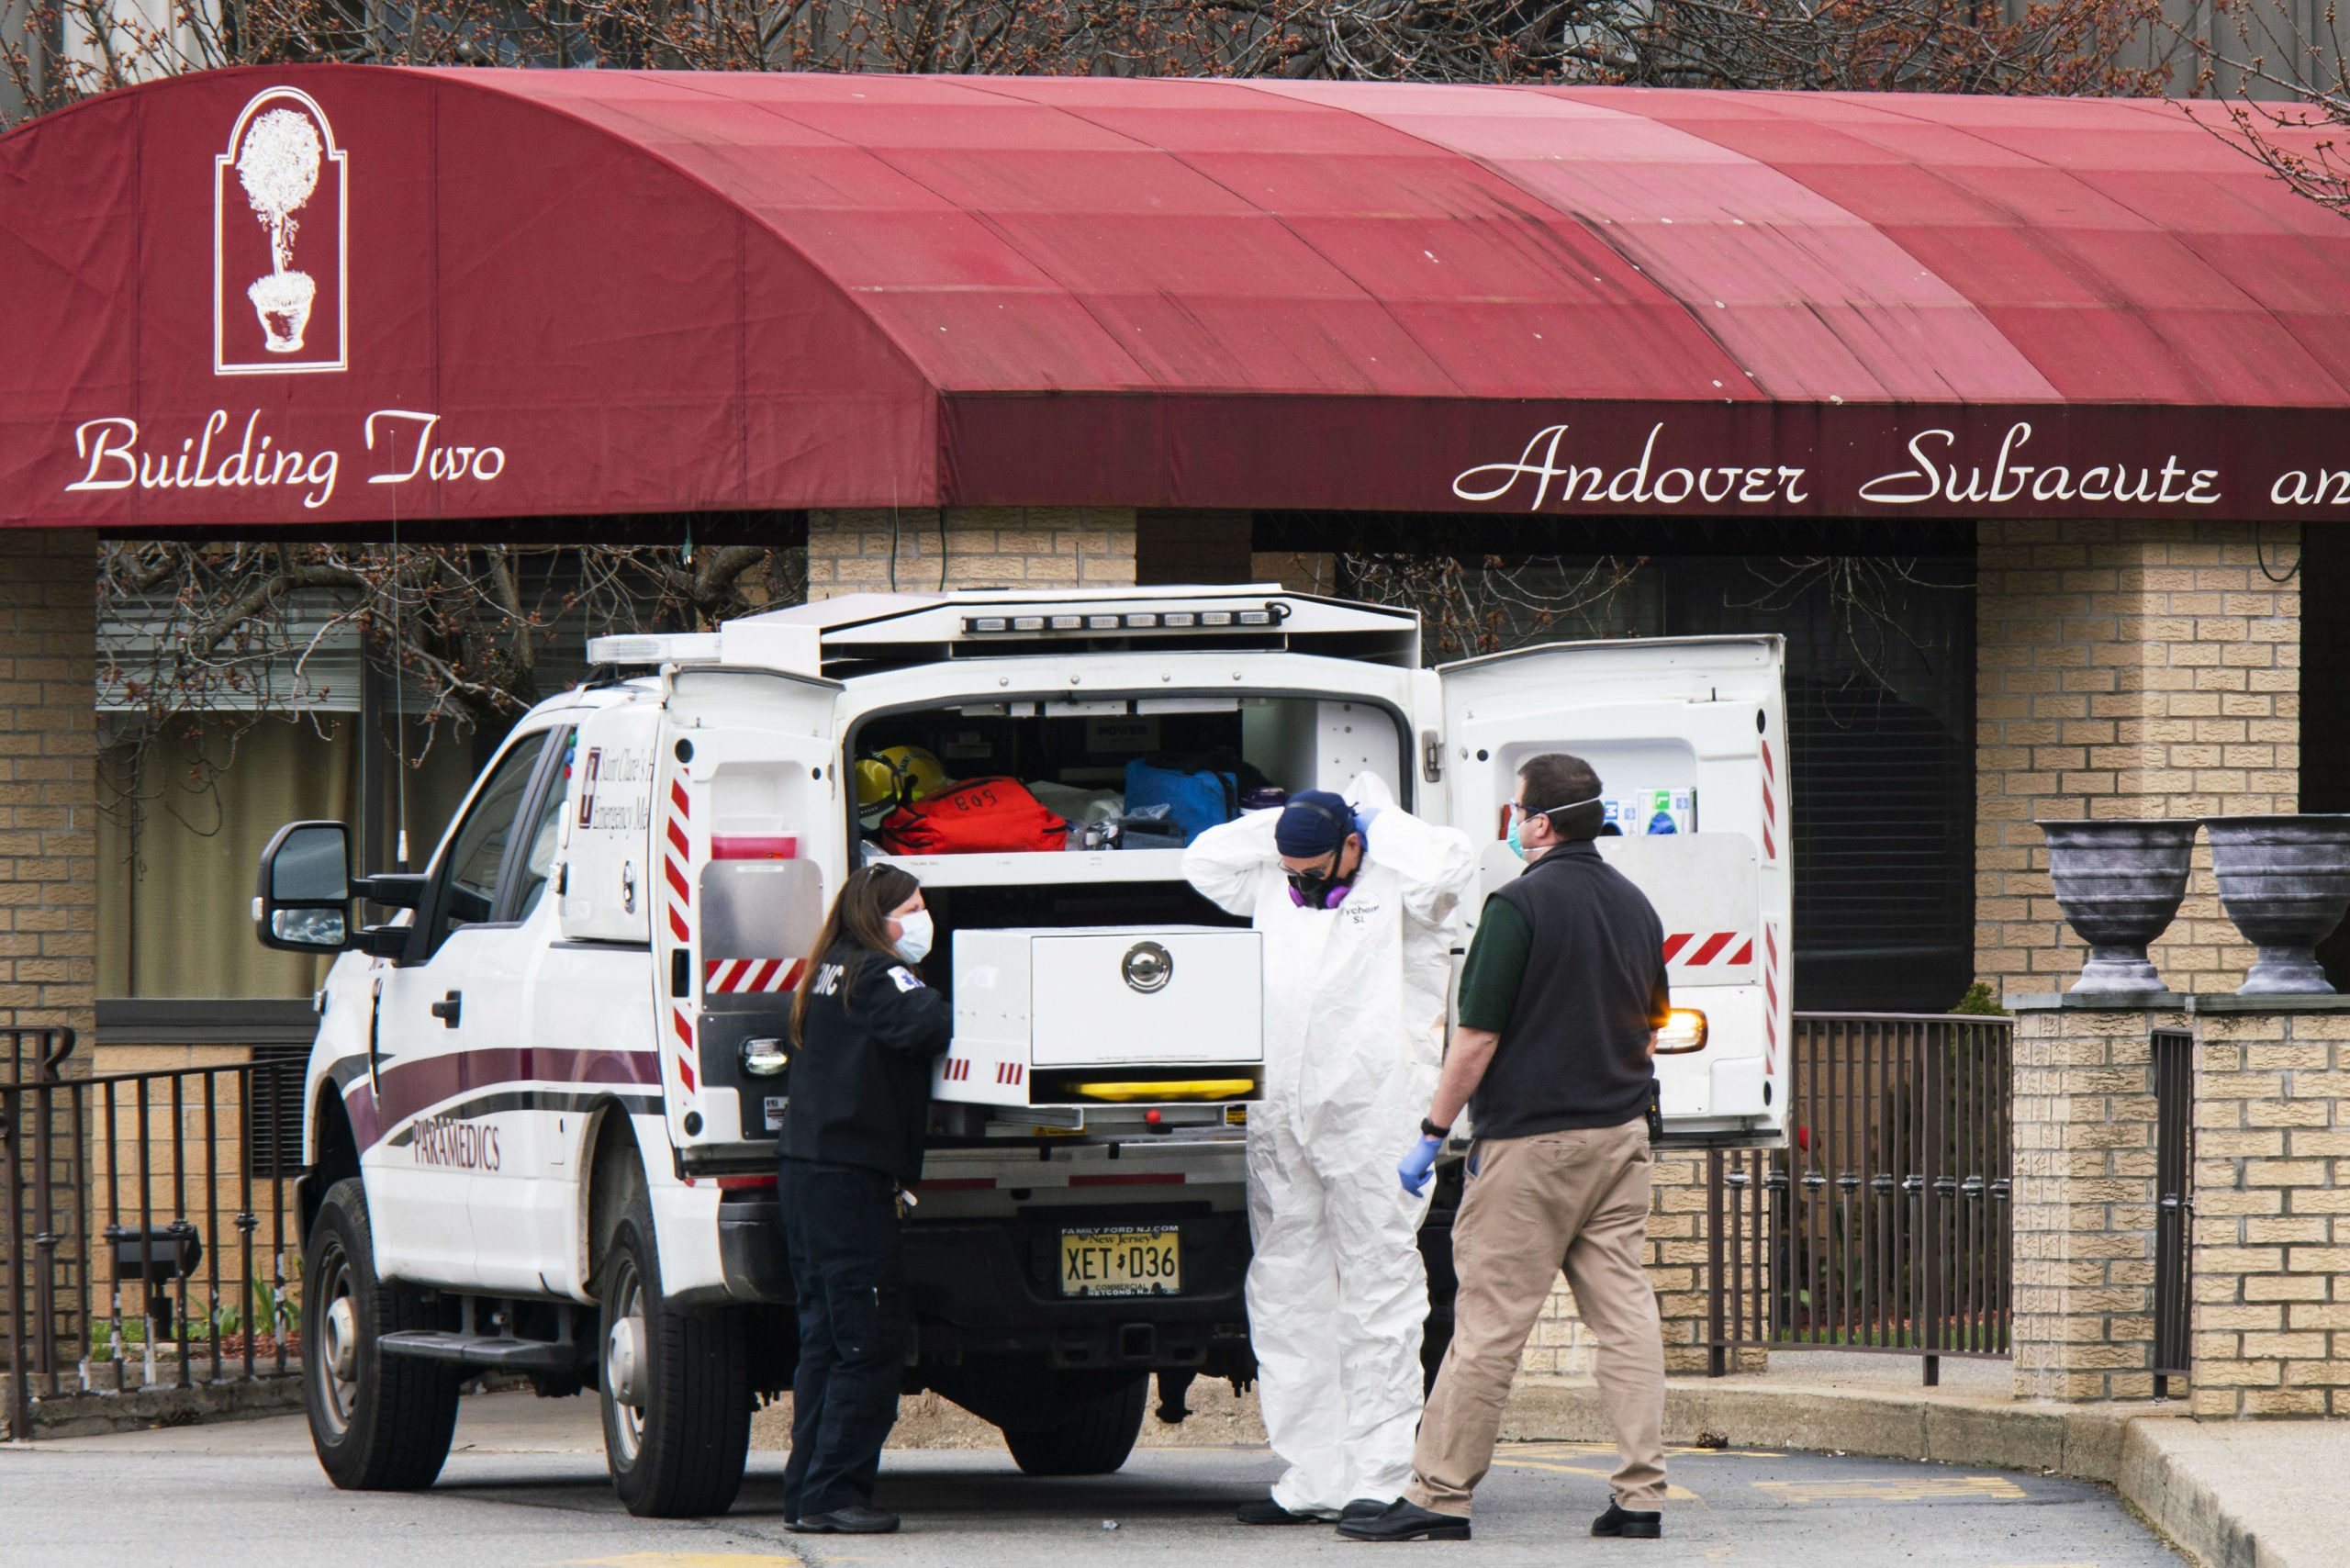 New Jersey AG opens probe of nursing home deaths after finding 17 bodies in facility hit by coronavirus